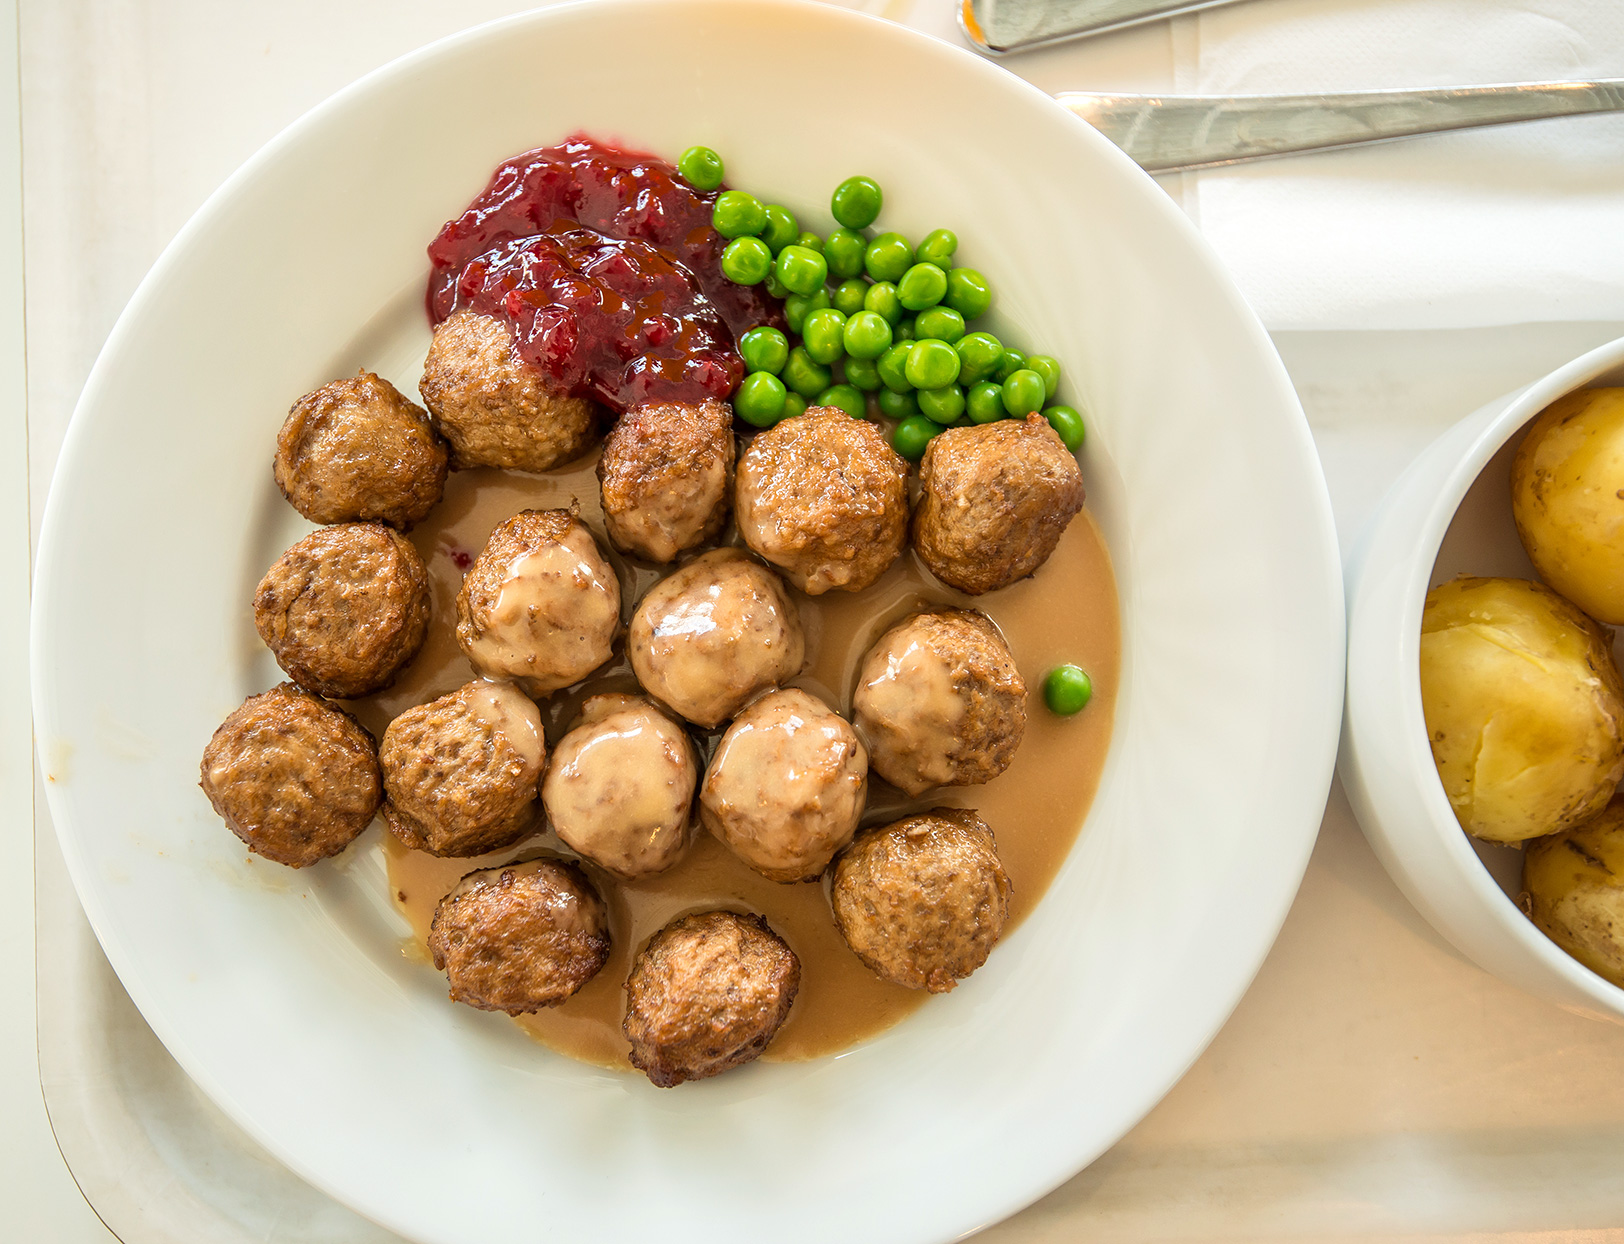 swedish meatballs on plate